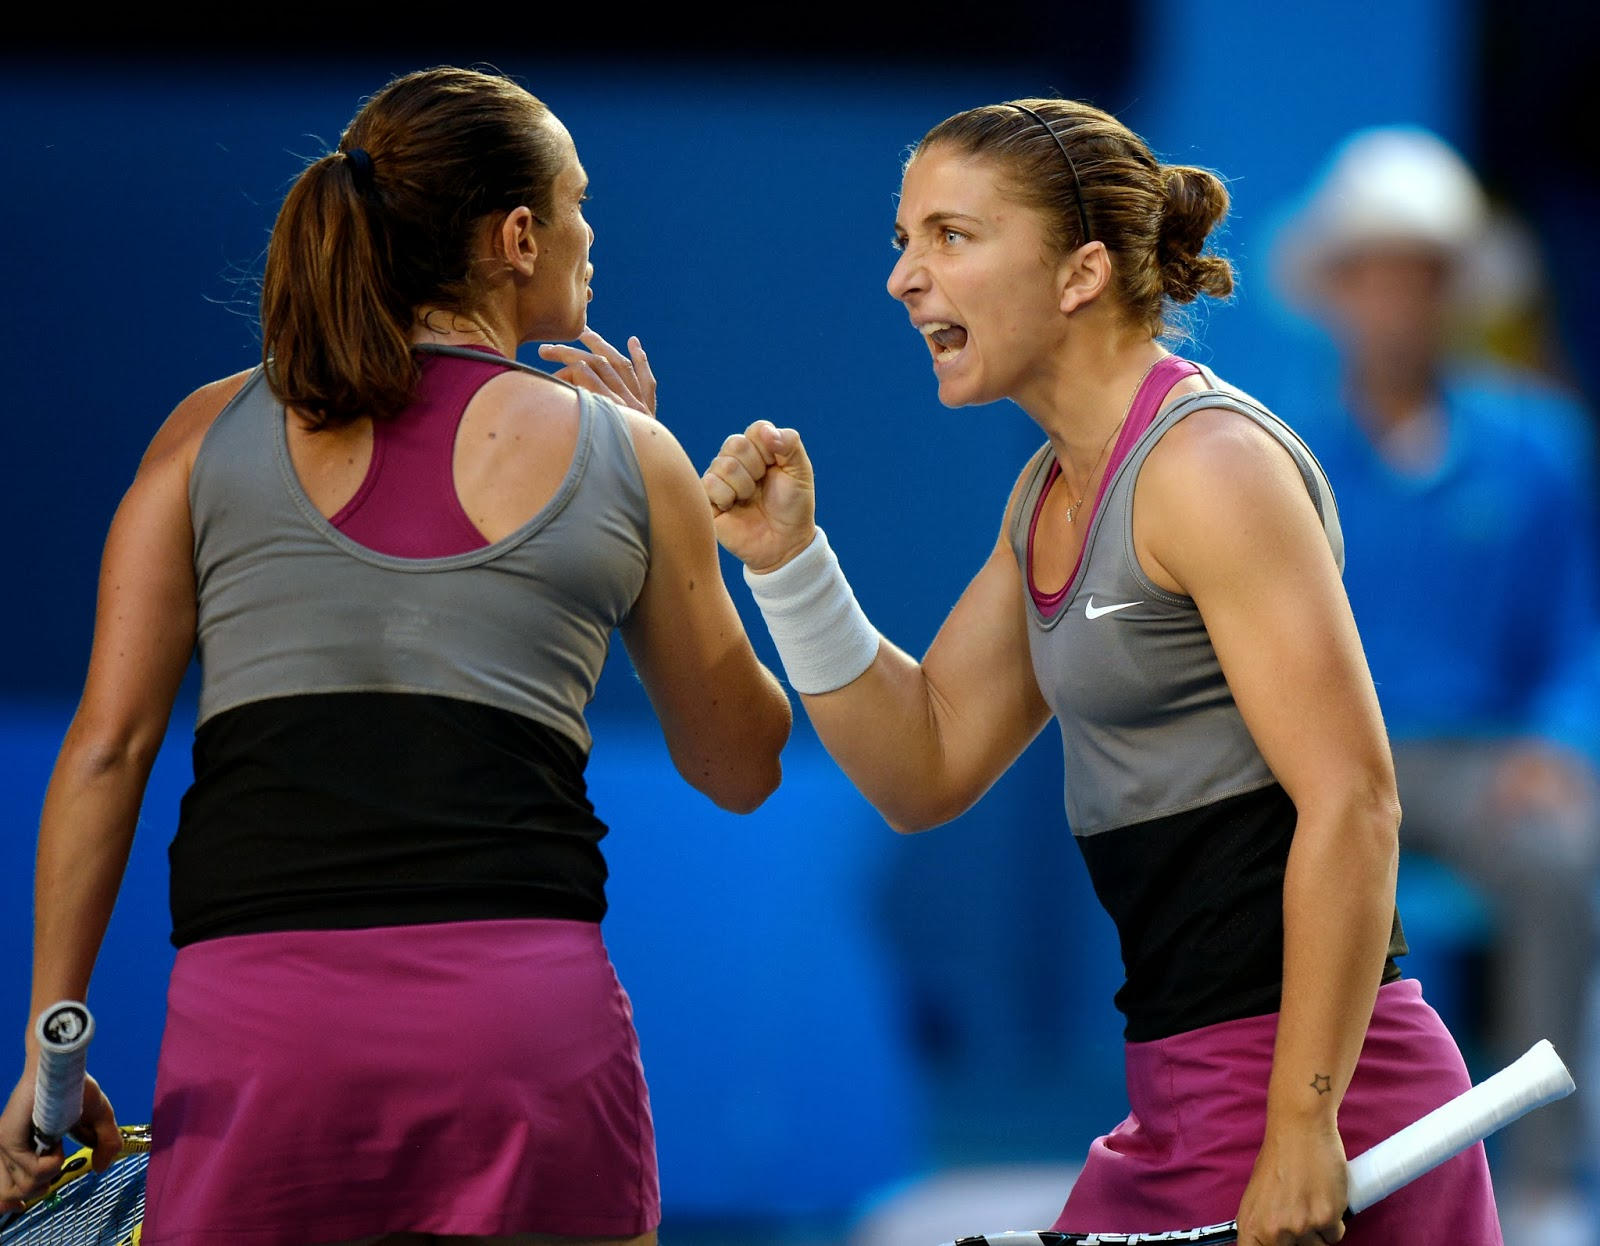 Italy, Roberta Vinci, Sara Errani, Trophy, Celebration, Winner, Women,  Doubles, Final, Russia, Elena Vesnina, Ekaterina Makarova, 2014, Australian Open, Tennis, Melbourne, Sports, Tournament, 2014, Match,